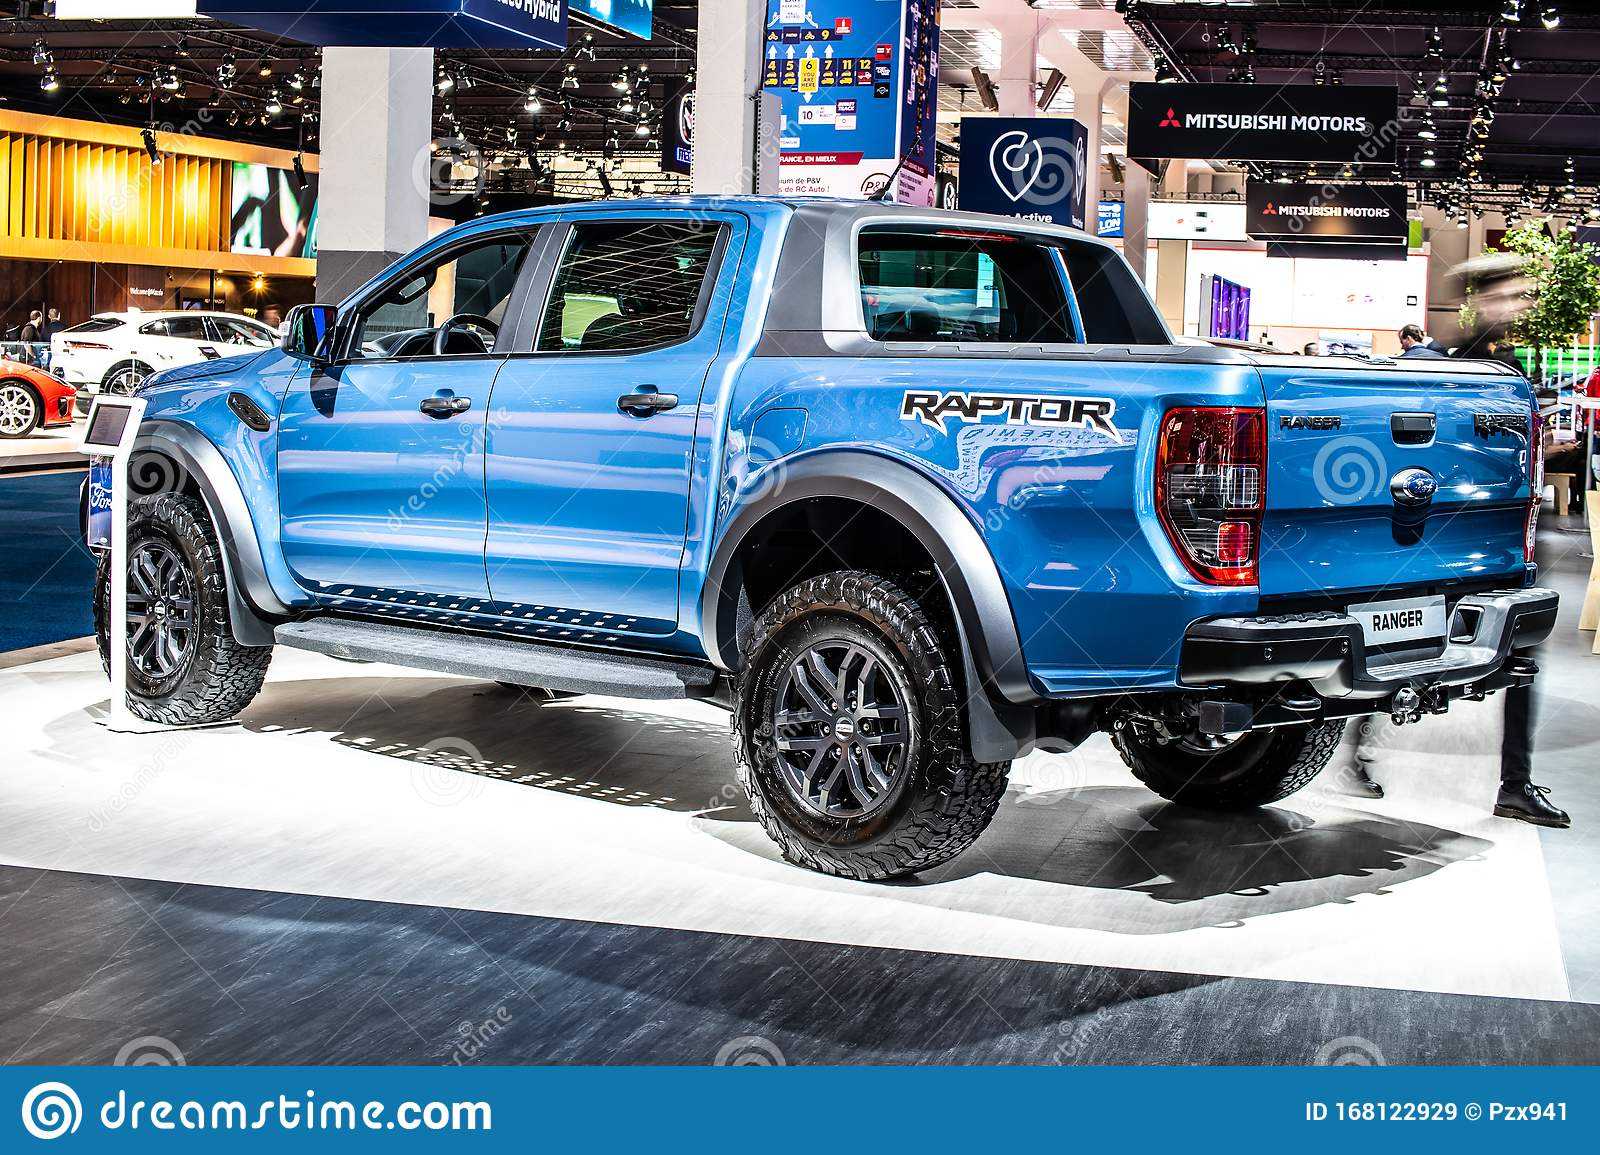 Blue Ford Ranger Iii Raptor Pickup Truck Brussels Motor Show 3rd Gen Produced By American Automaker Ford Motor Co Editorial Stock Image Image Of Design Concept 168122929